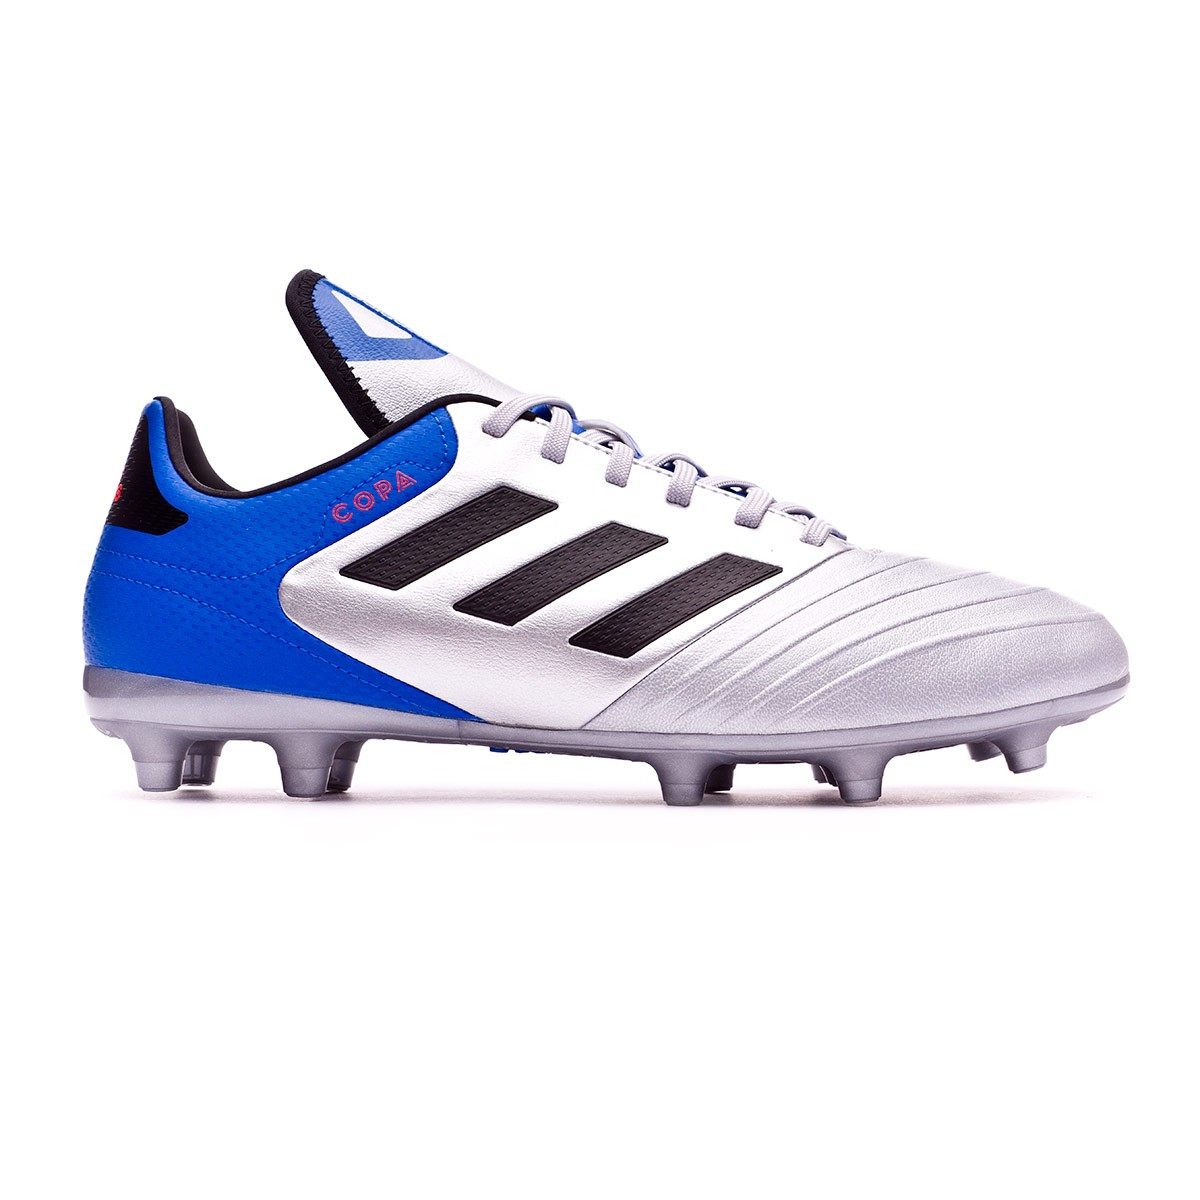 the best attitude f8e39 51dae Boot adidas Copa 18.3 FG Silver metallic-Core black-Football blue - Leaked  soccer